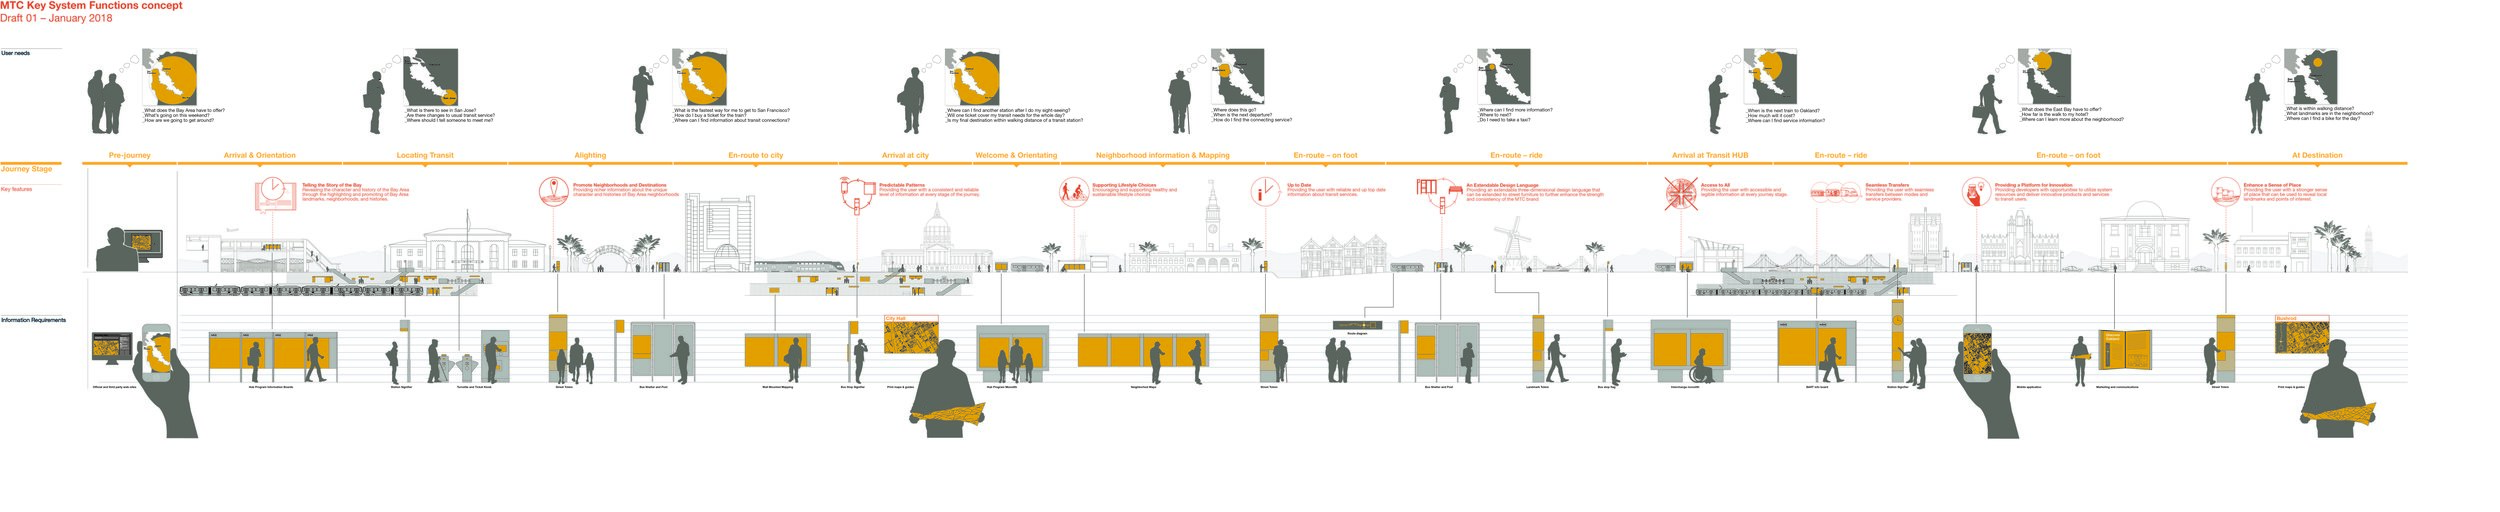 Bay Area Metropolitan Transportation Commission Wayfinding  City-ID - San Francisco, CA - 2017  Worked as part of the City-ID design team to produce product concept illustrations, whole journey planning scenarios, workshops, surveys, as well as completing extensive research into the Bay Area's numerous transportation authorities.